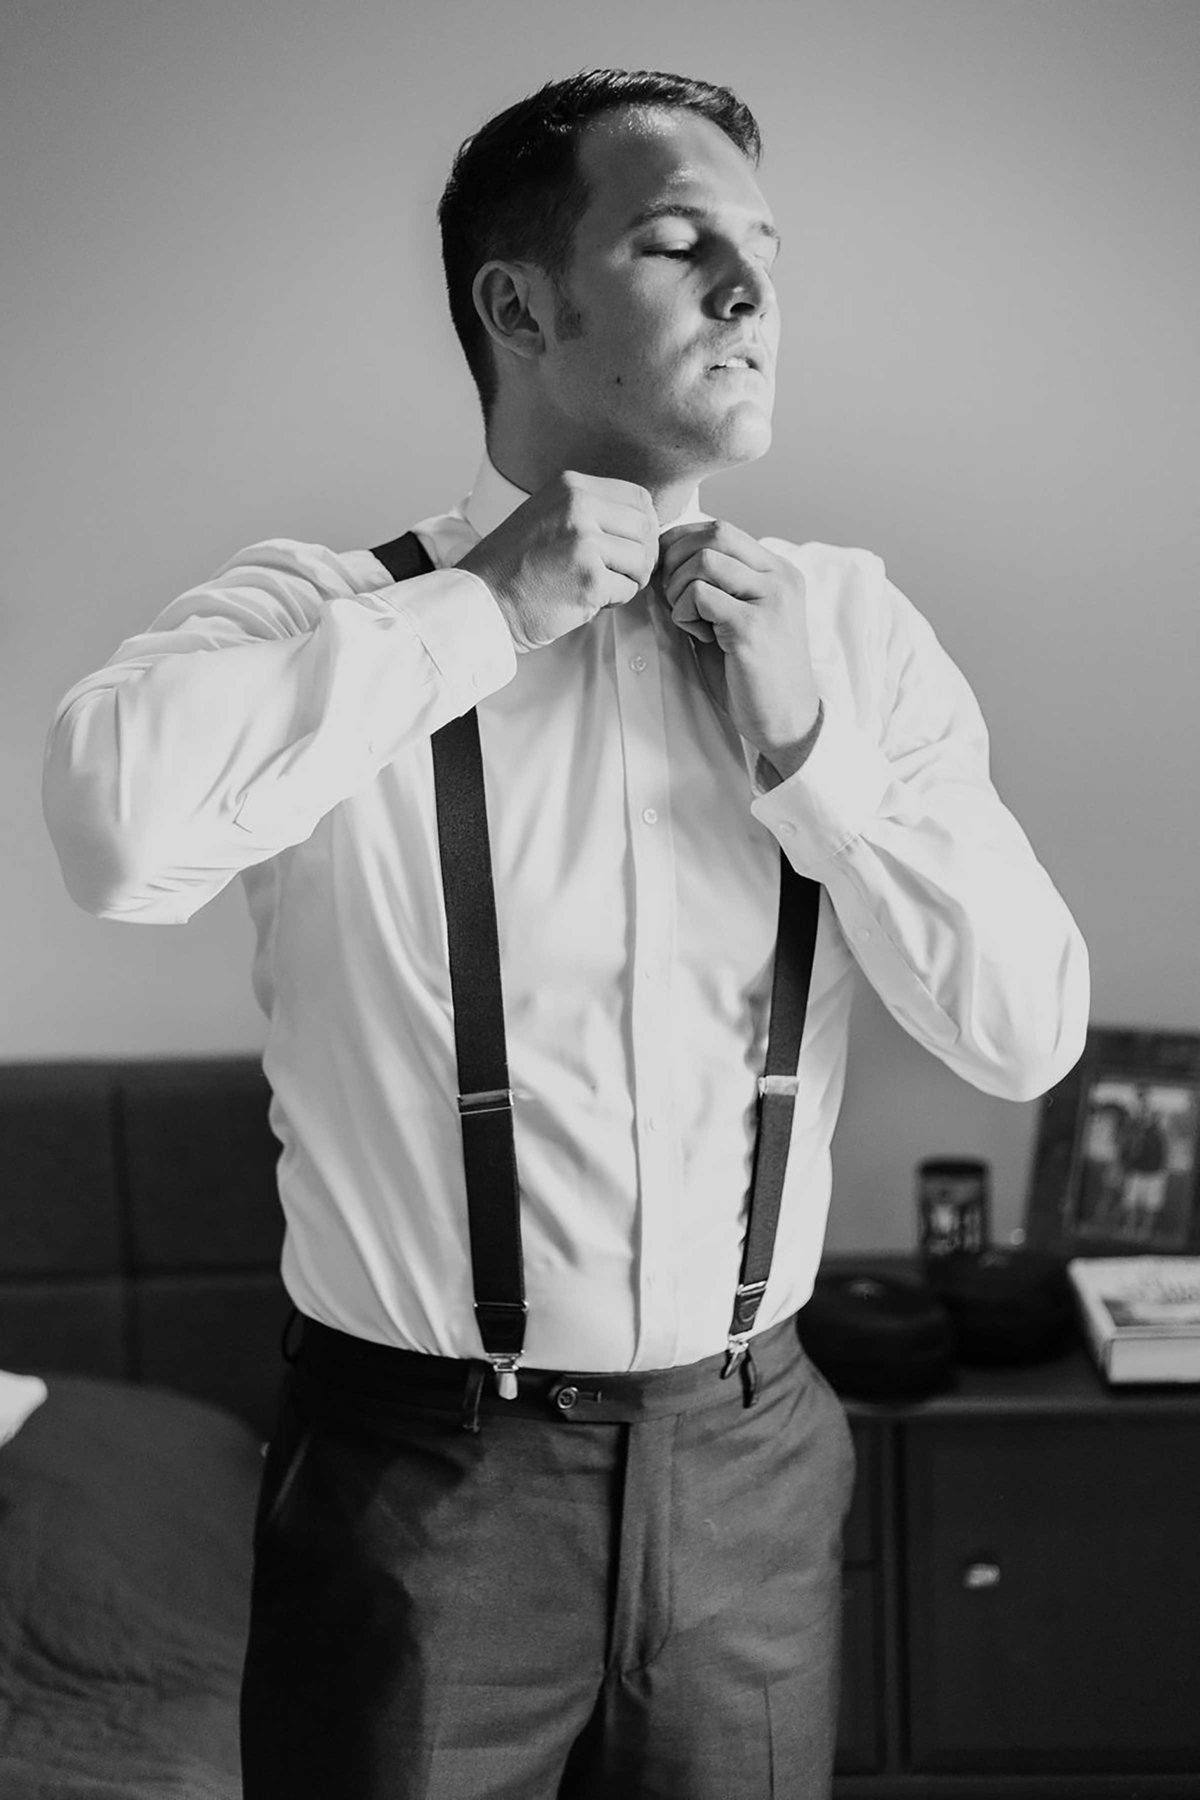 Groom-Getting-Ready-26